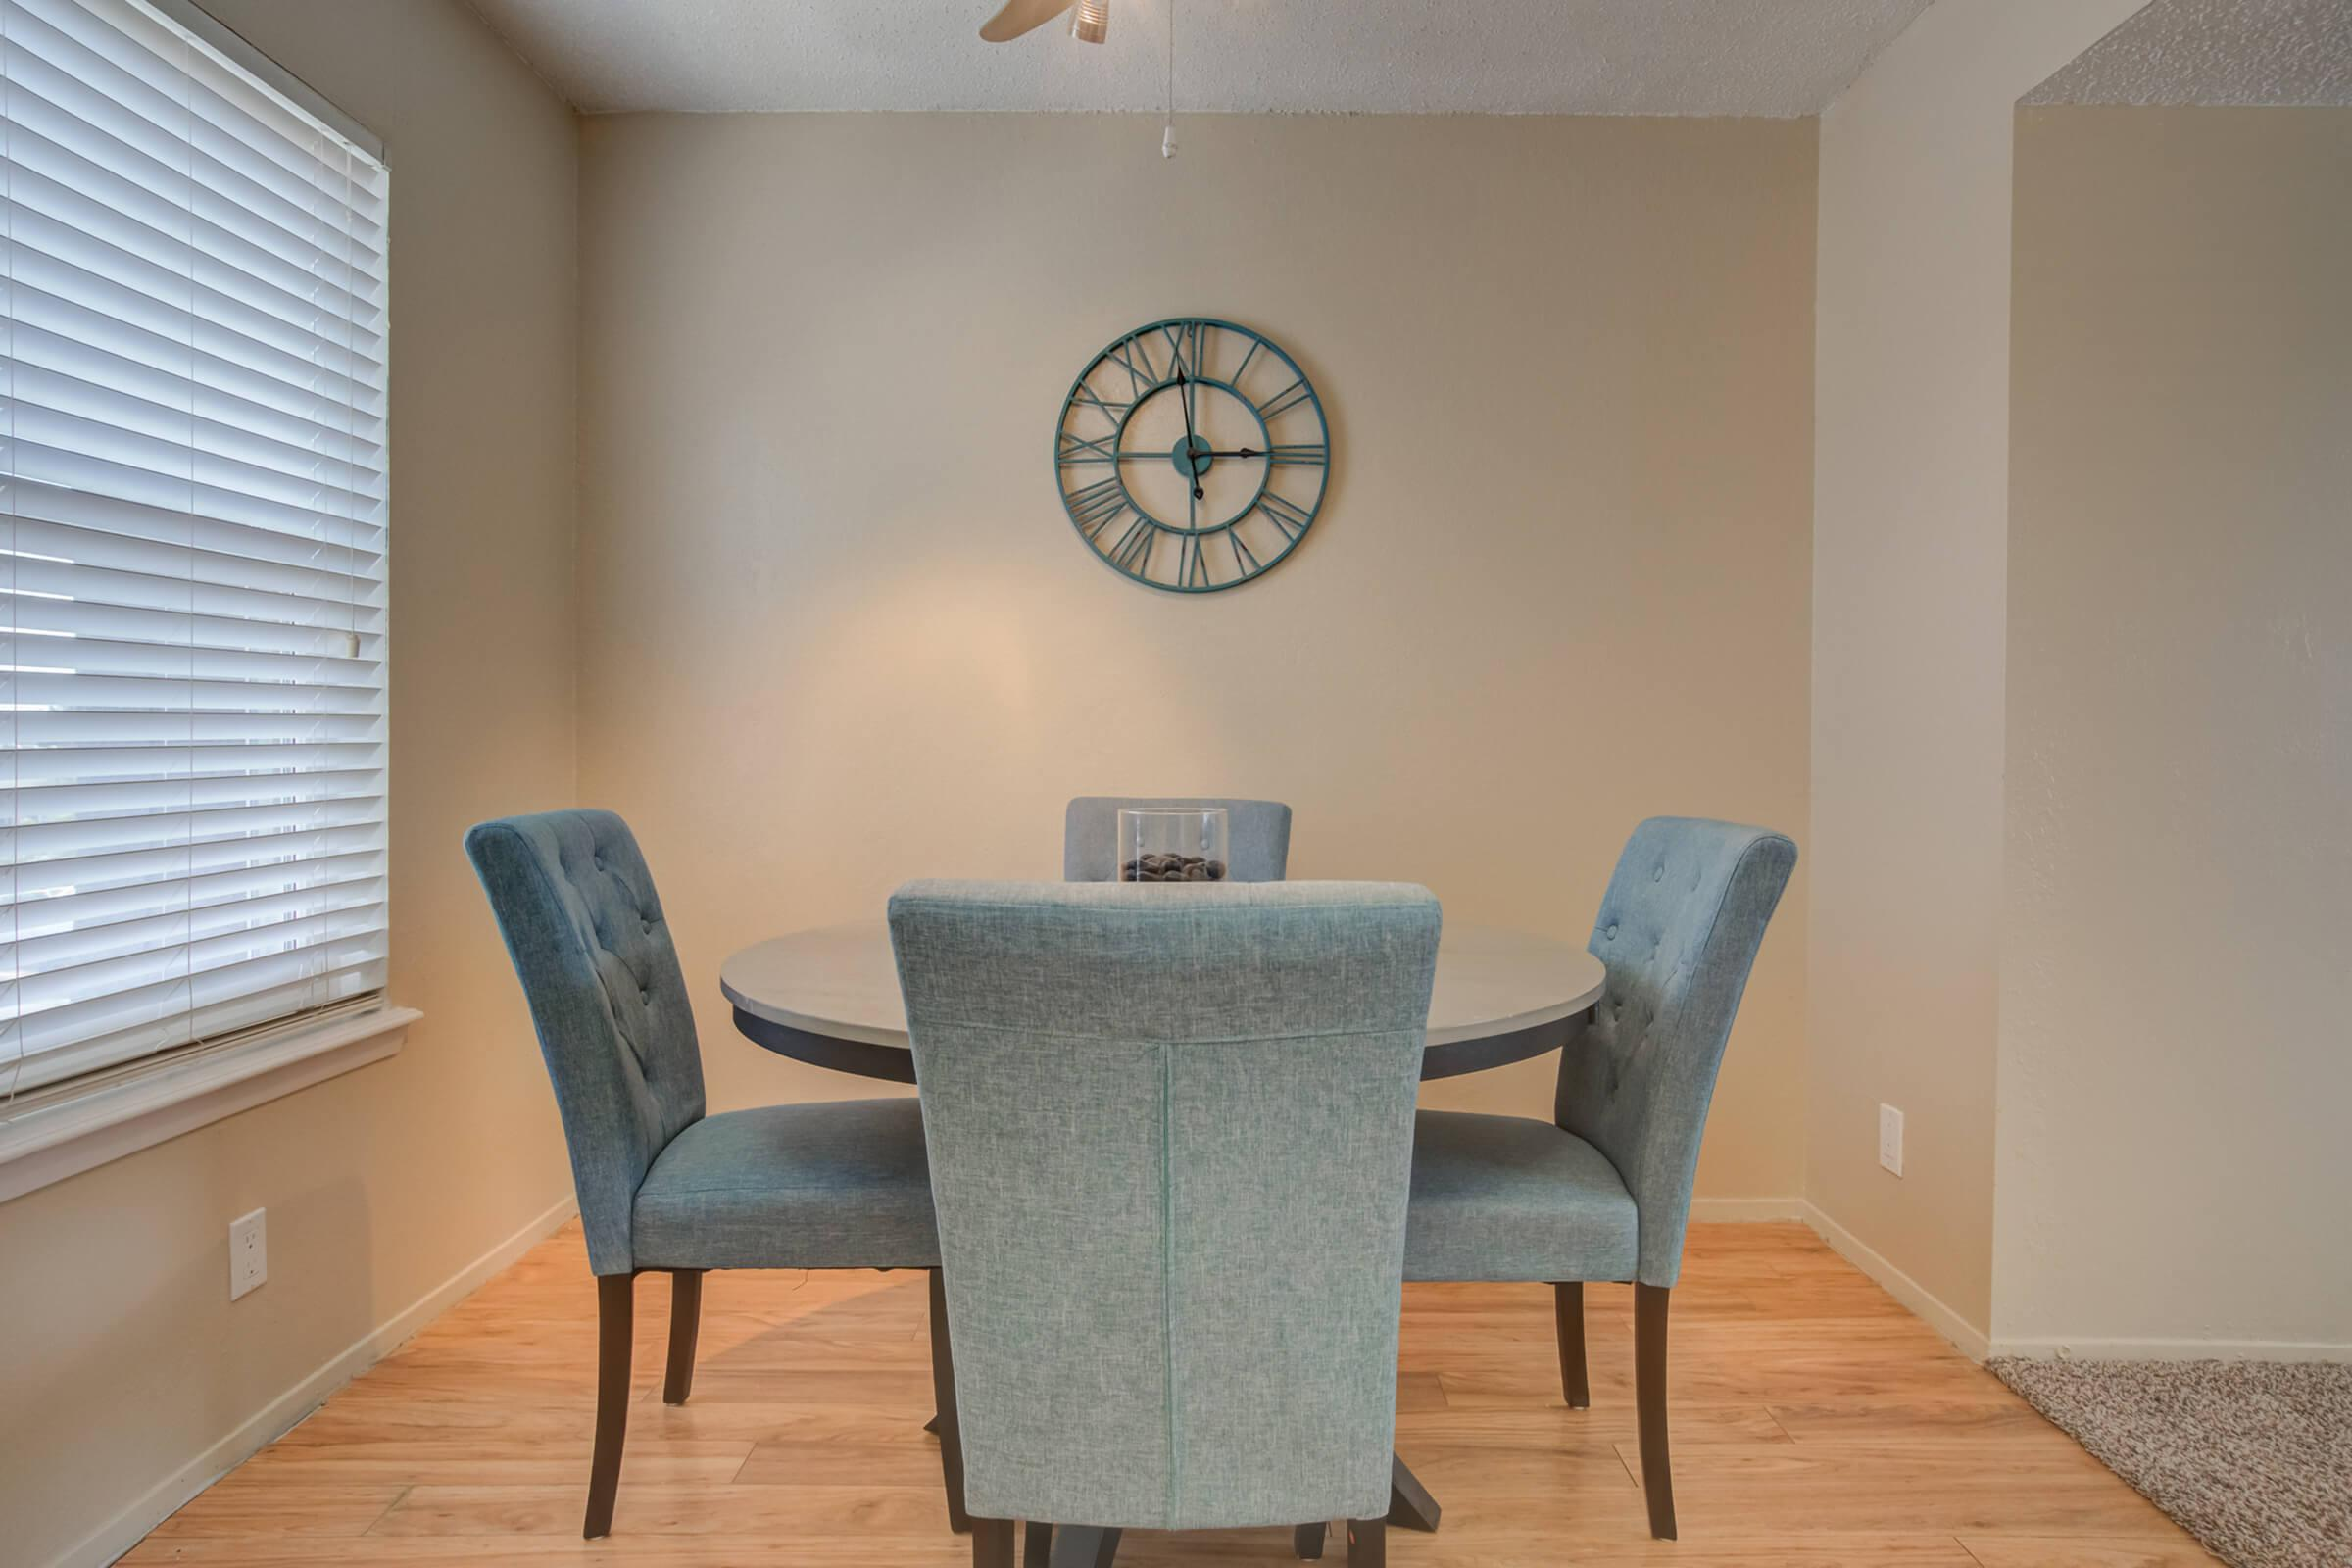 a living room with a clock at the top of a wooden chair